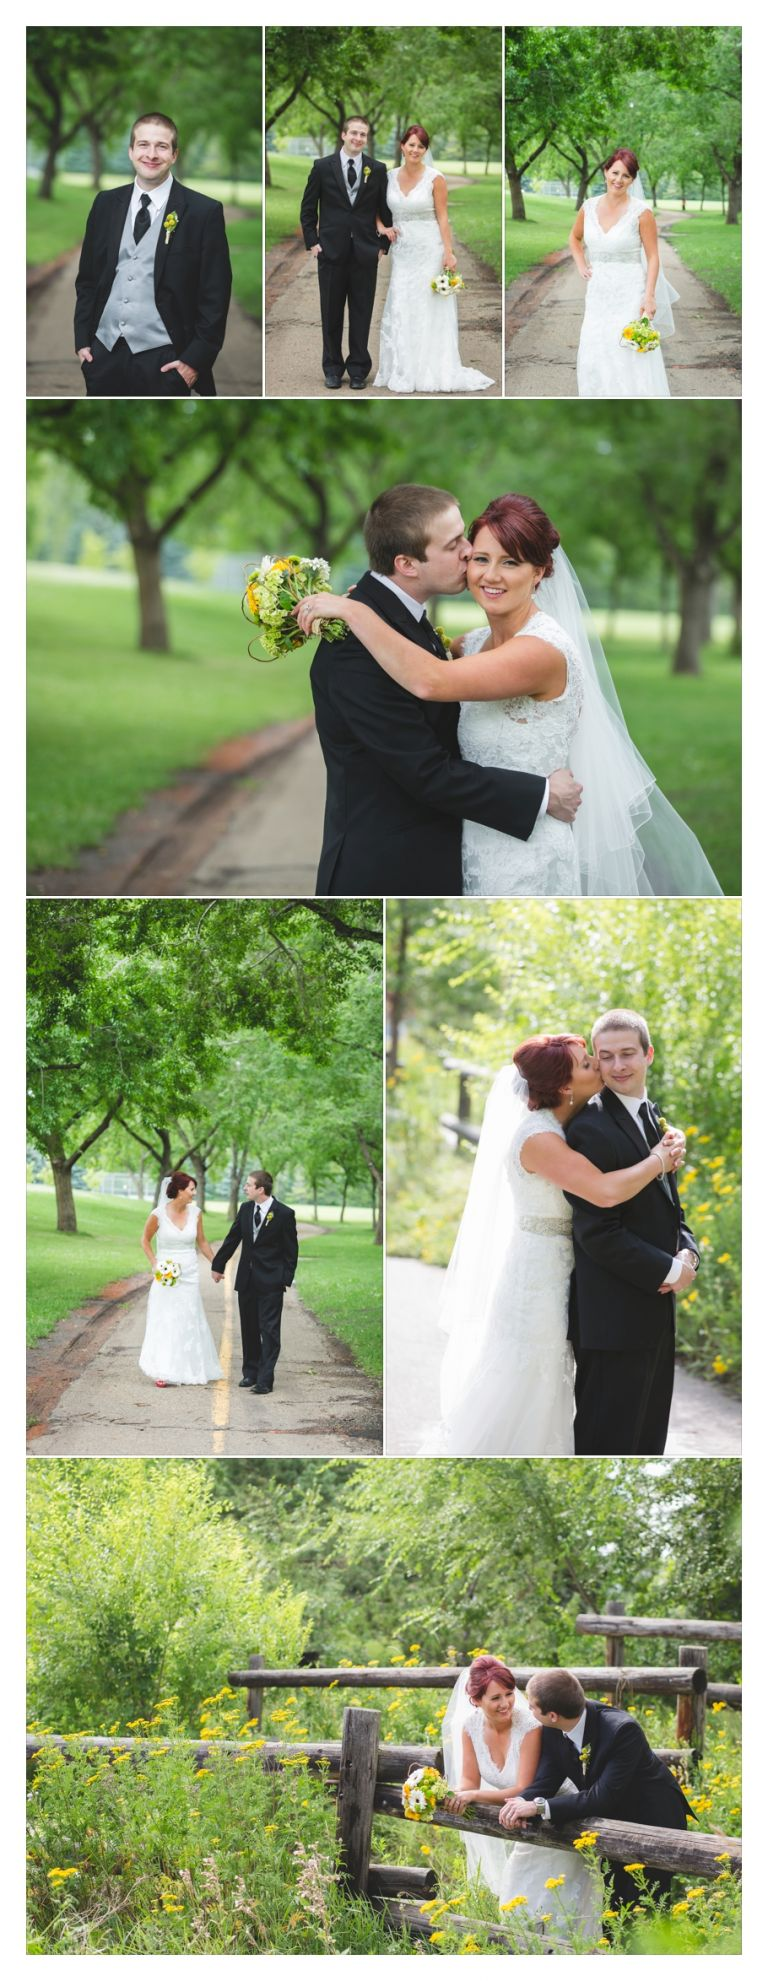 Terri_Nathan_Edmonton_Wedding_4